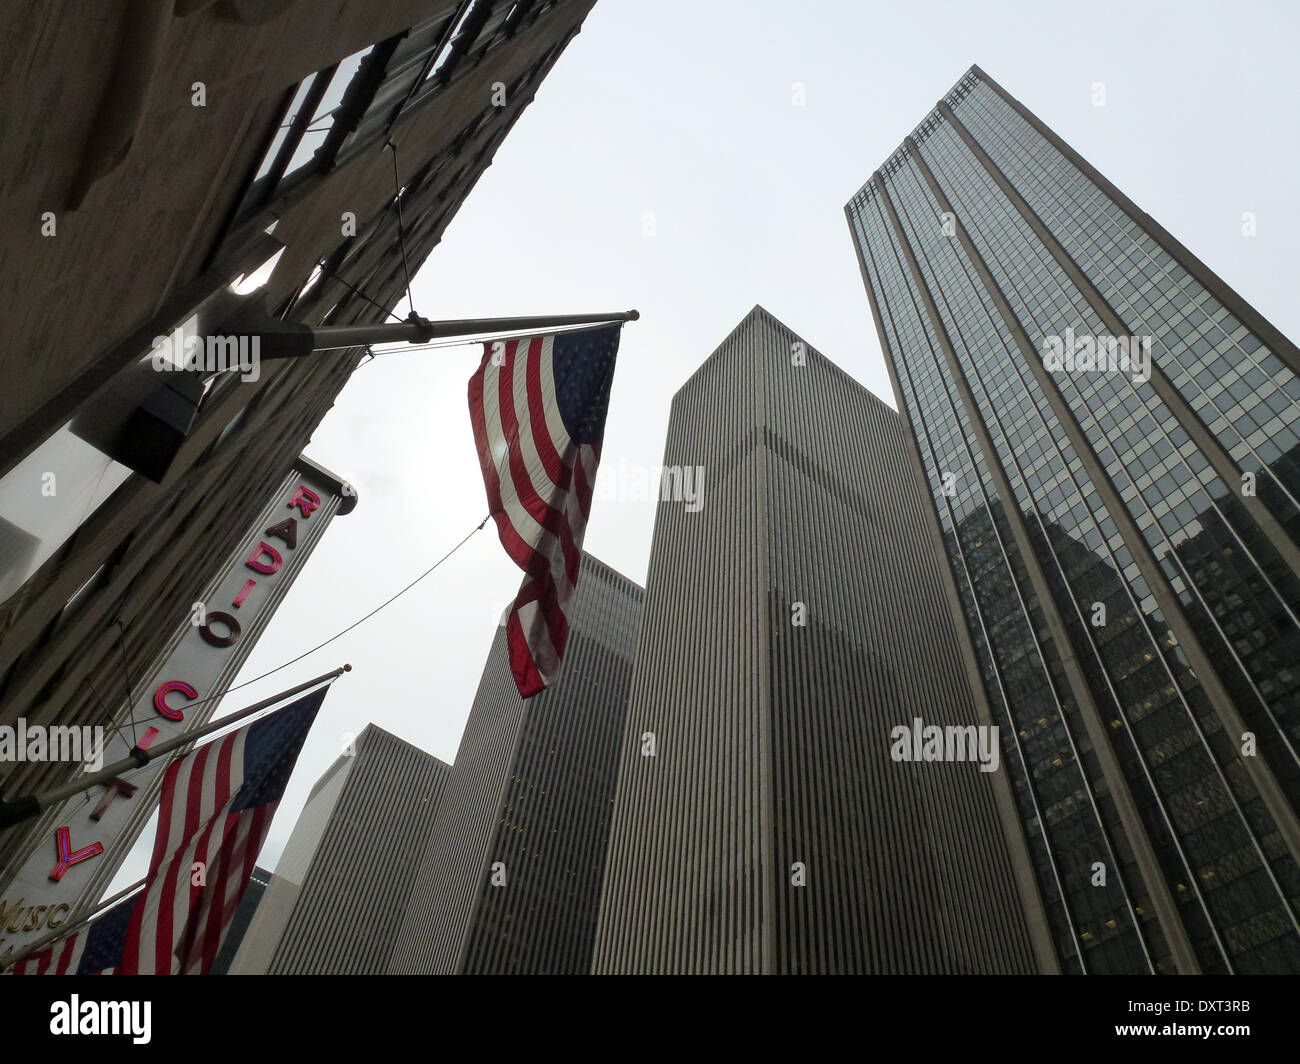 (FILE) - An archive picture, dated 18 August 2014, shows a view of Radio City Music Hall (L) and a skyscraper on 6th Avenue in Manhattan, Newy York, USA. The Radio City Music Hall was built in the 1920s and opened its doors for the first time in 1932. The concert venue is located between 50th und 51st Street and was constructed in the Art Deco Style with geometric ornaments which include glass, aluminium and chrome as the main components of building materials. Photo: Alexandra Schuler - NO WIRE SERVICE - - Stock Image